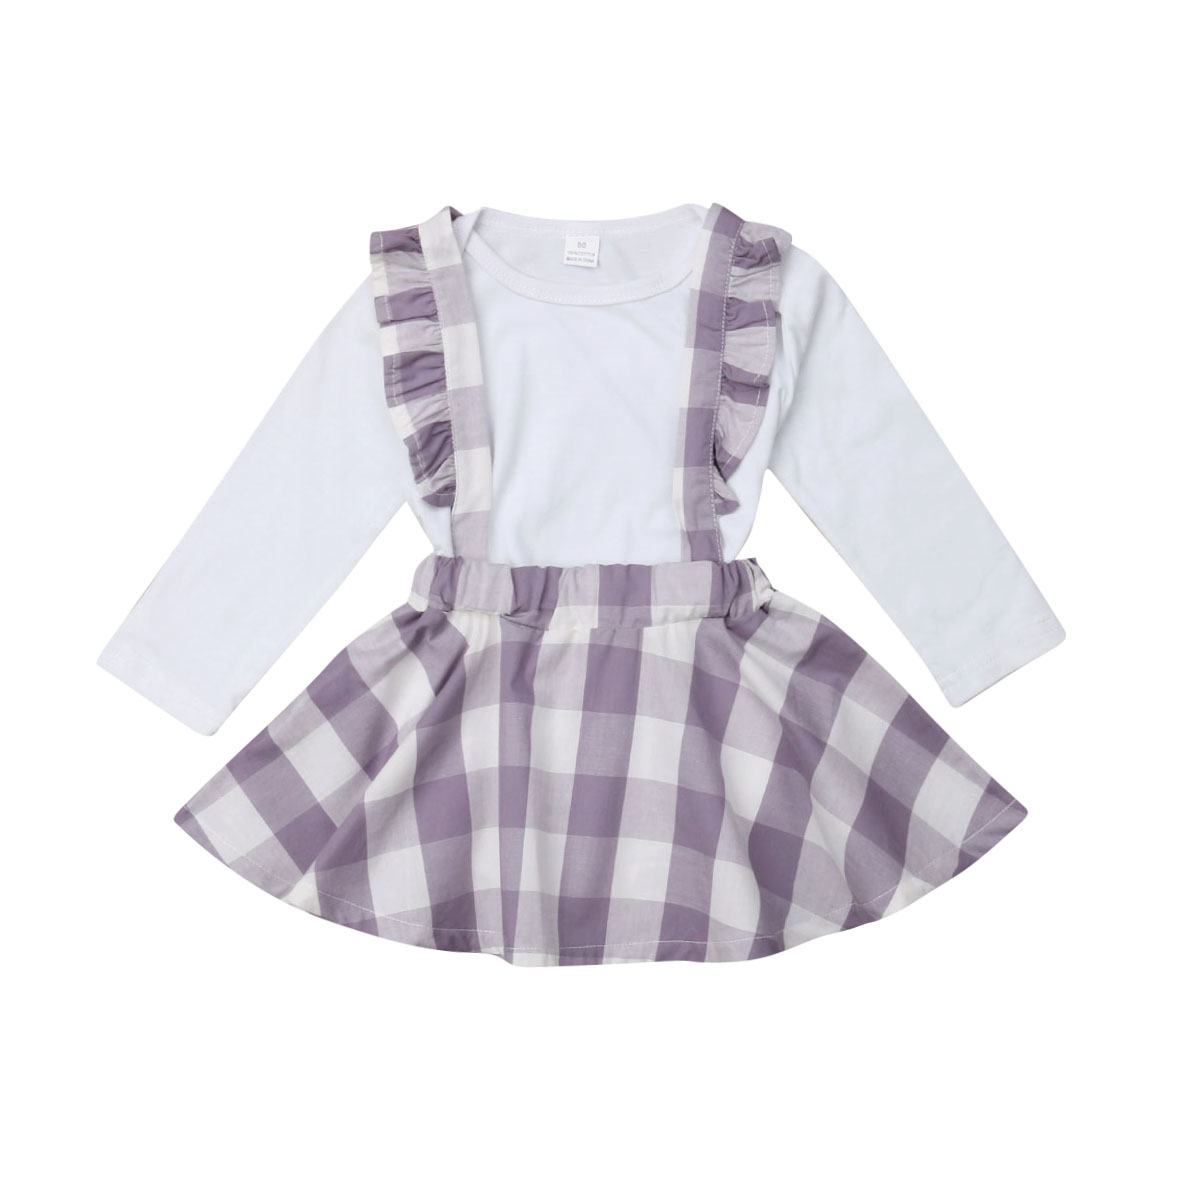 fb123c091 Details about UK 2Pcs Newborn Baby Girls Romper Plaids Overall Skirt  Suspenders Dress Outfits